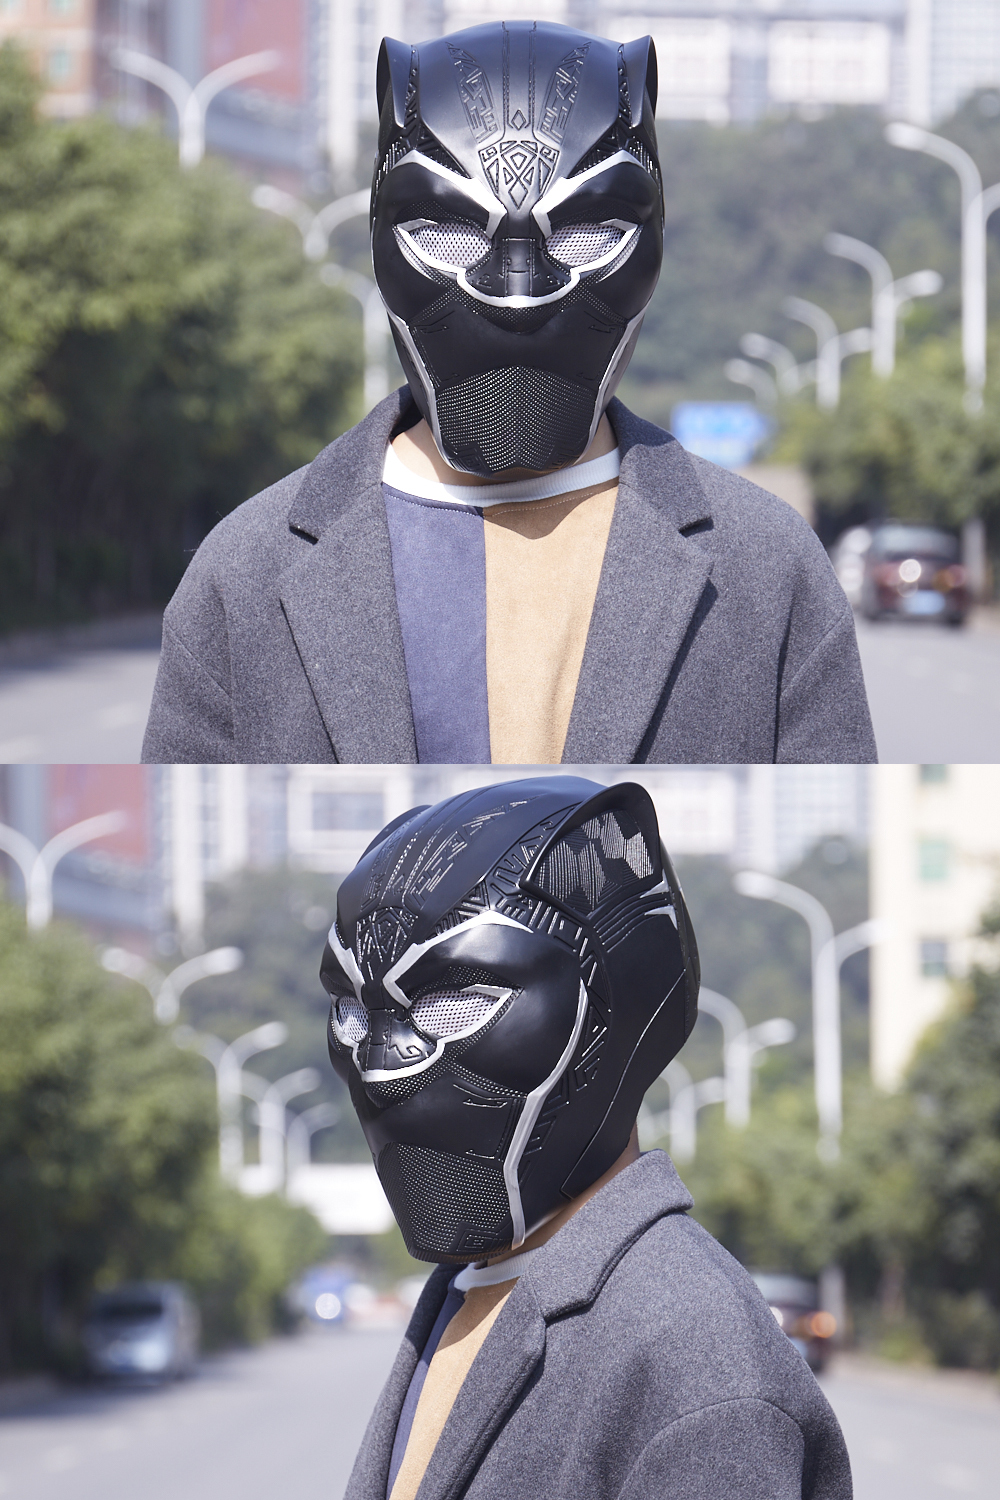 New Year Captain America Civil War T'Challa Black Panther Wakanda Cosplay Mask Black Helmet Carnival Party Mask For Adult 2018 (1)